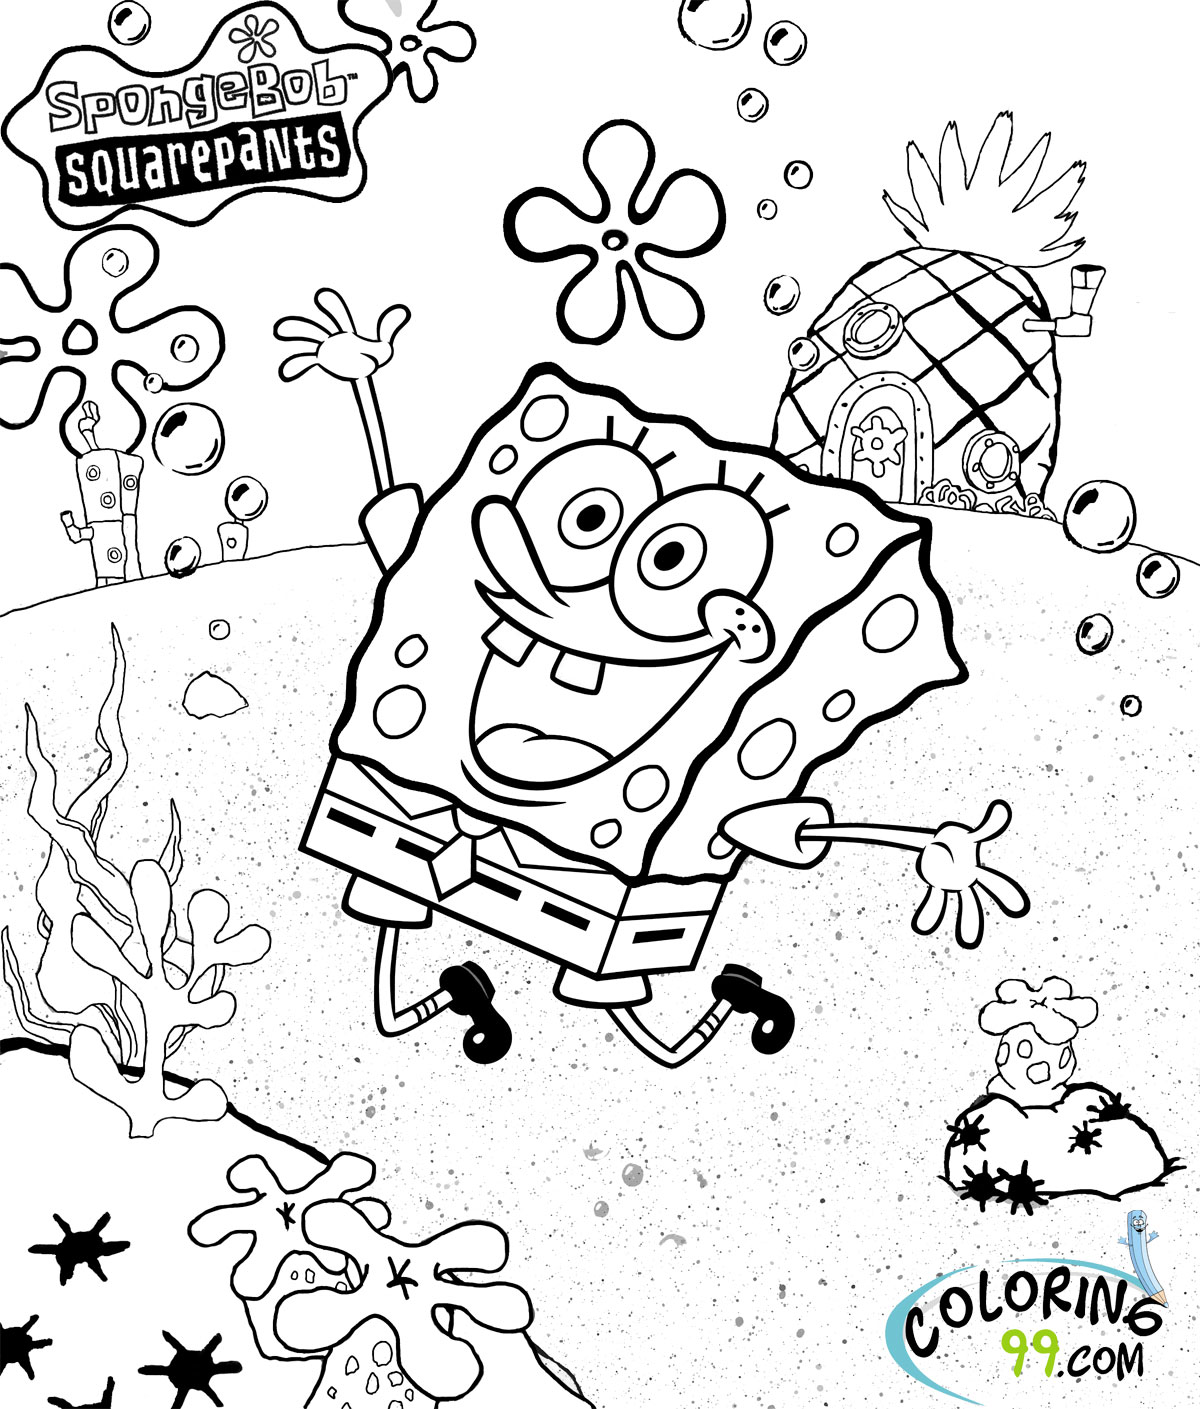 spongebob pictures to color printable spongebob coloring pages for kids cool2bkids pictures to color spongebob